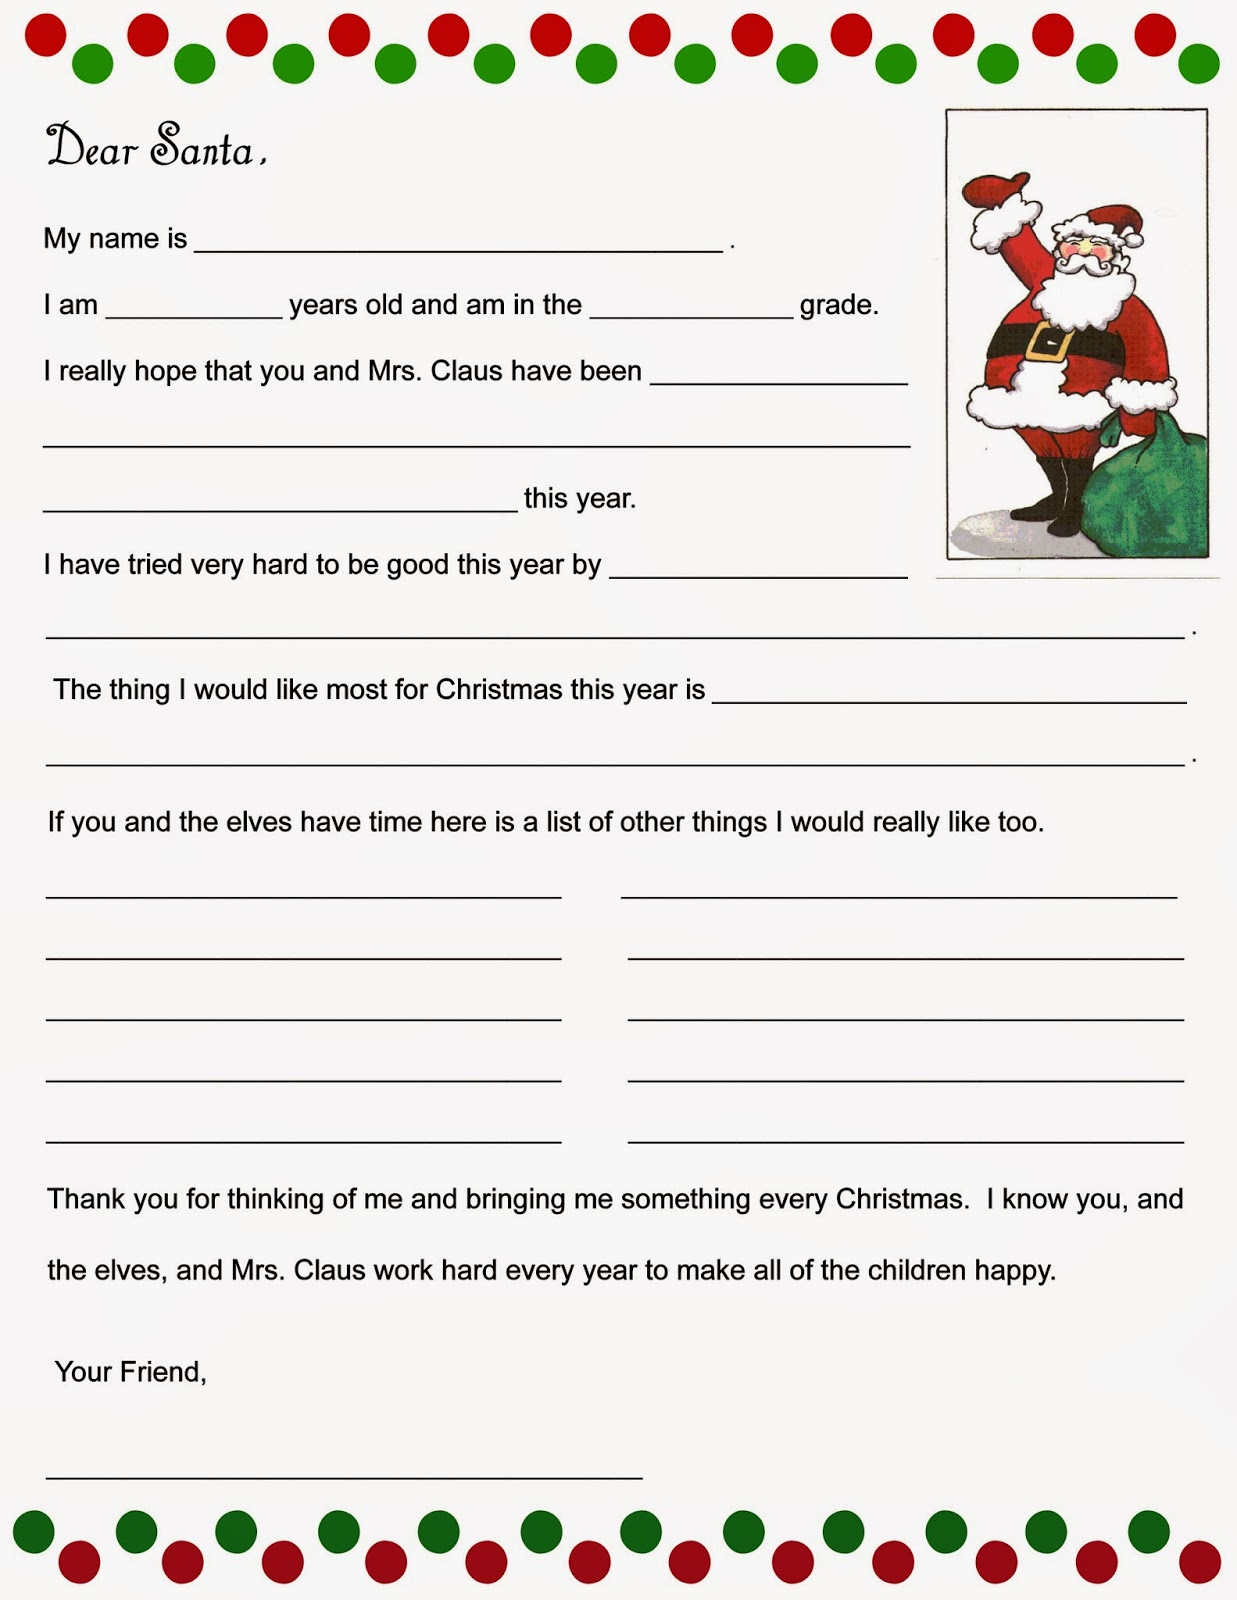 Christmas Wish List And Kids Letter To Santa!  Kids Christmas List Template